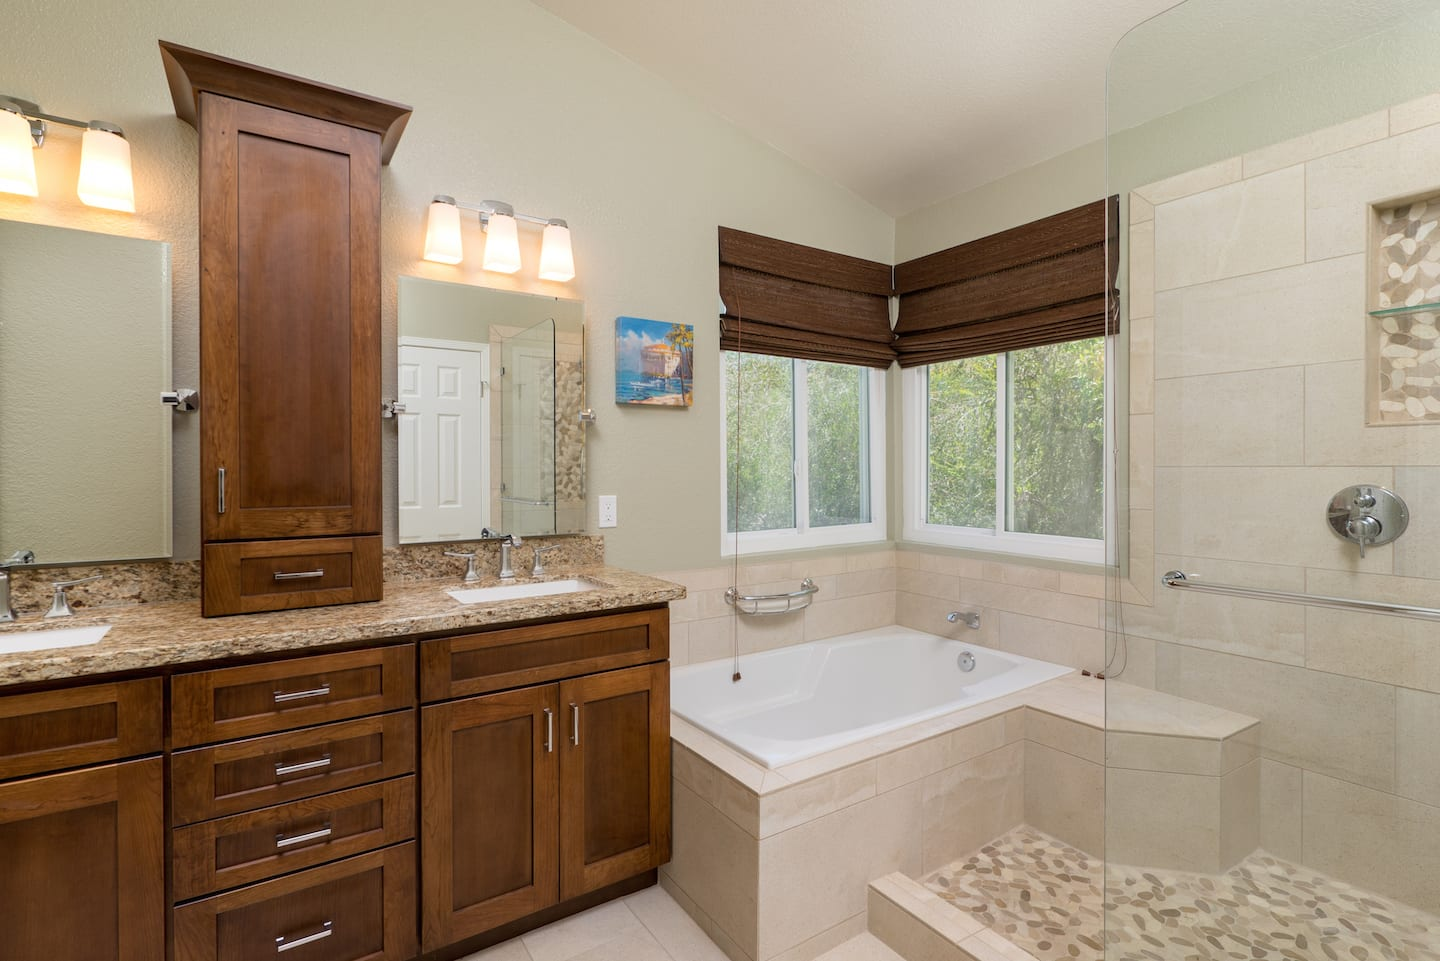 Local Bathroom Remodelers Bathroom Remodeling  Planning And Hiring  Angie's List